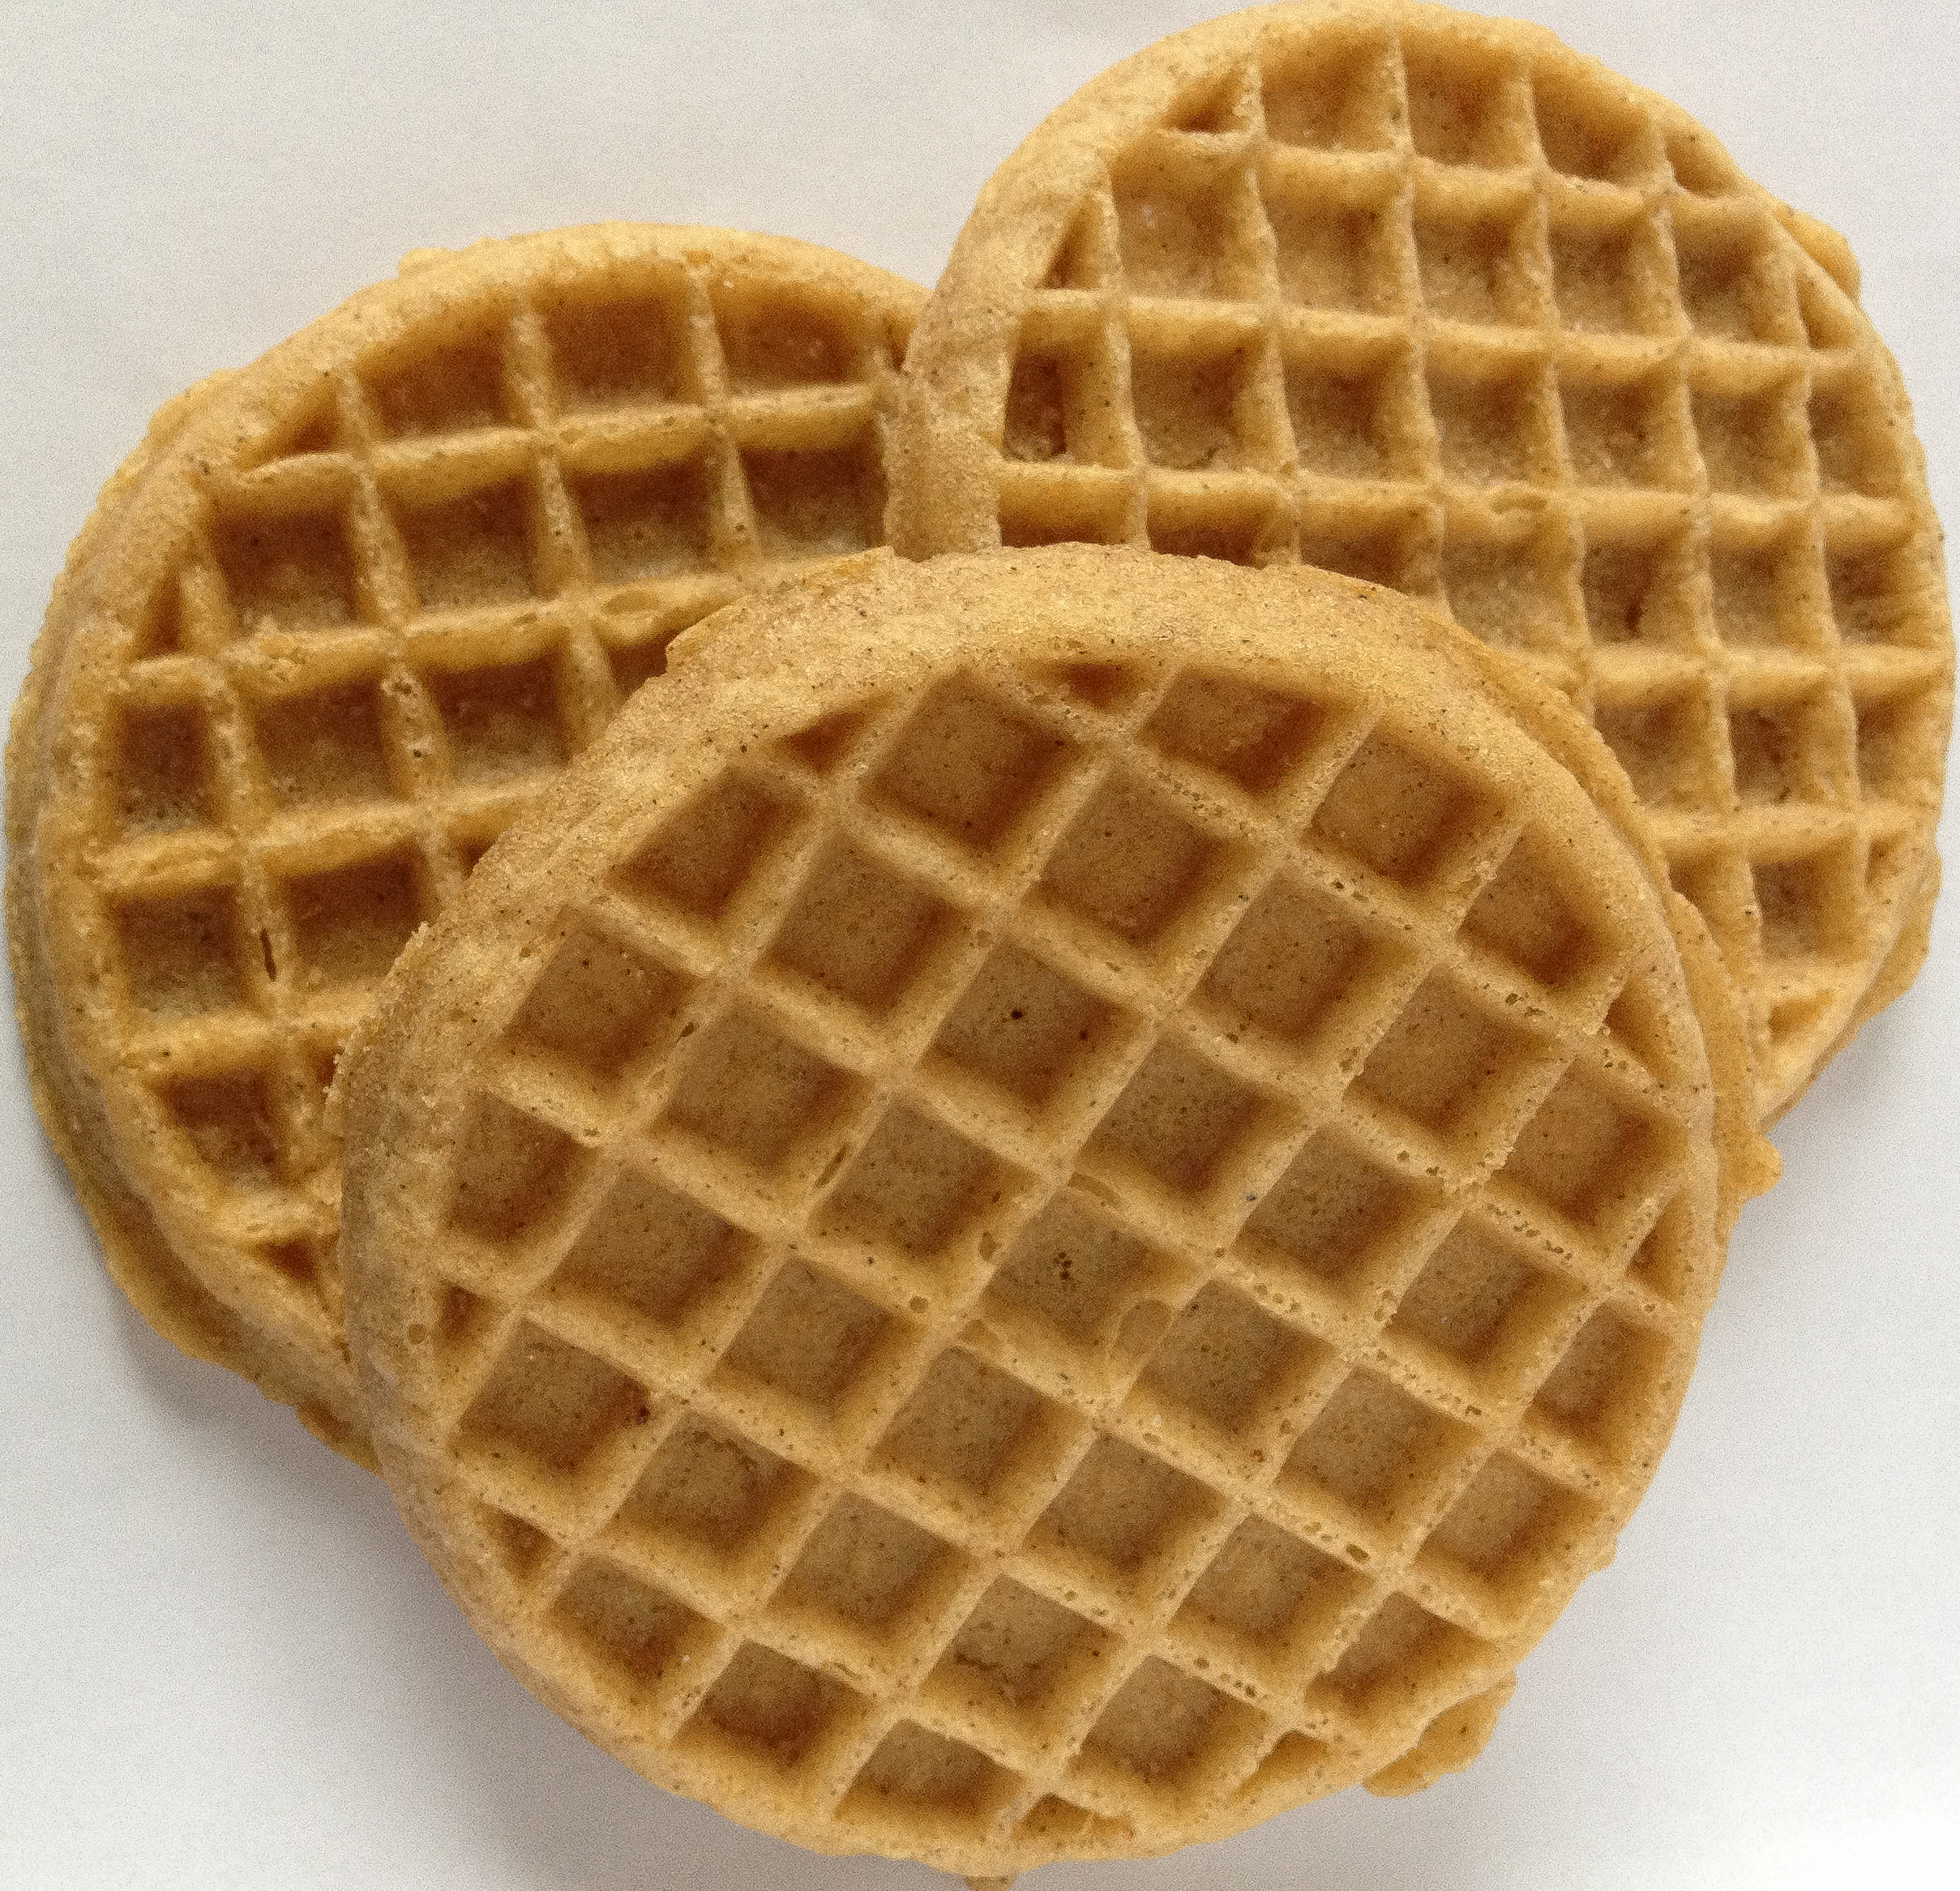 the same texture as other eggo waffles i ve tried